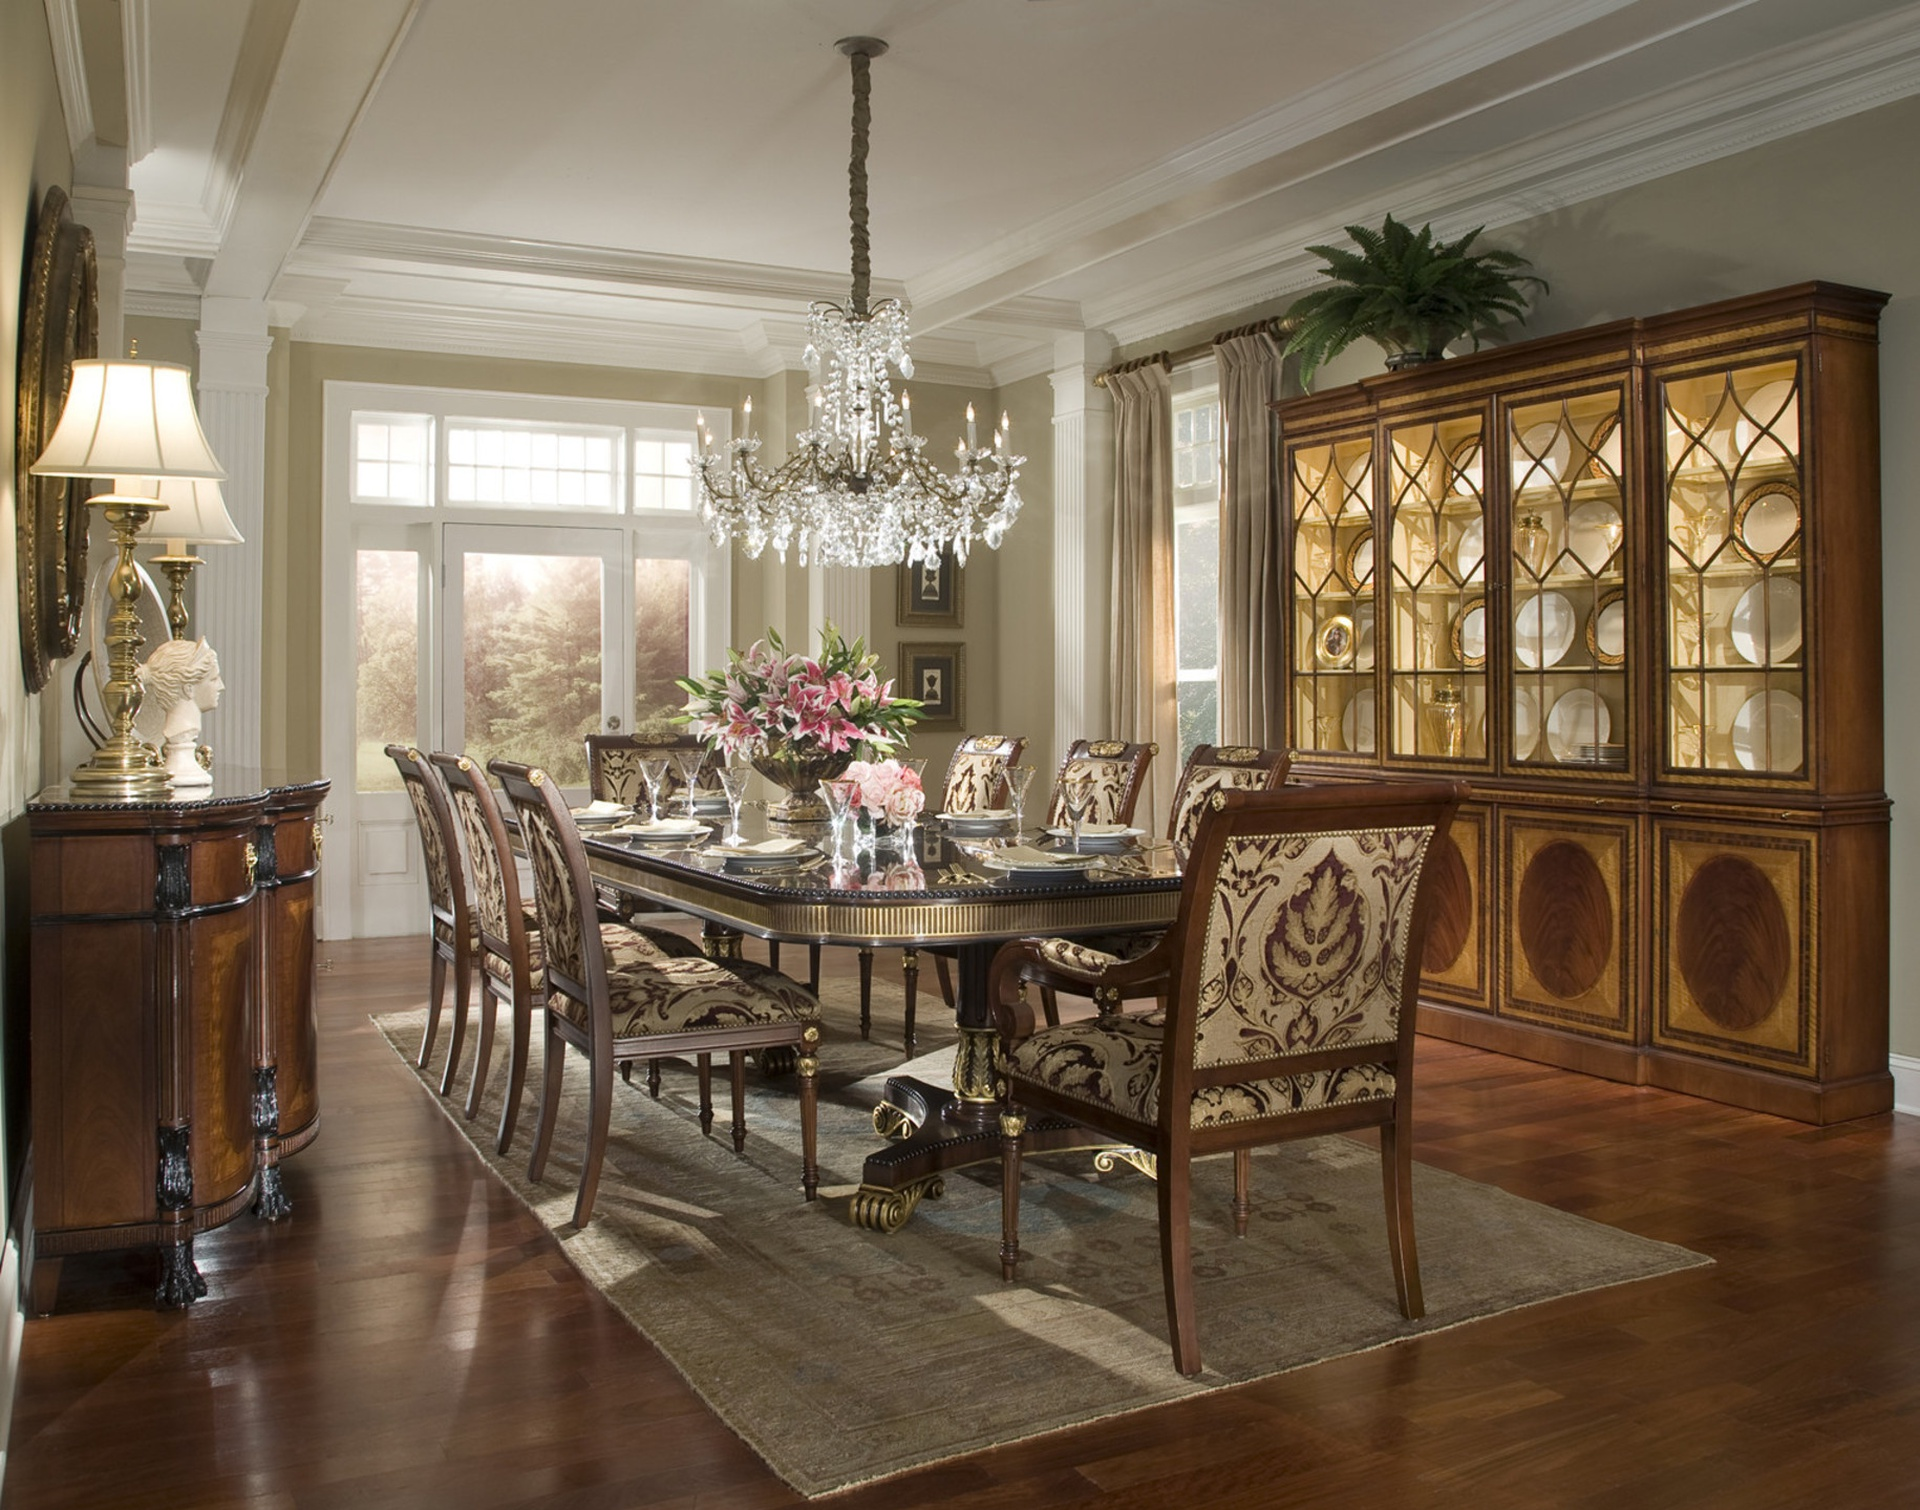 Awesome regency dining room photos exterior ideas 3d for Regency dining room